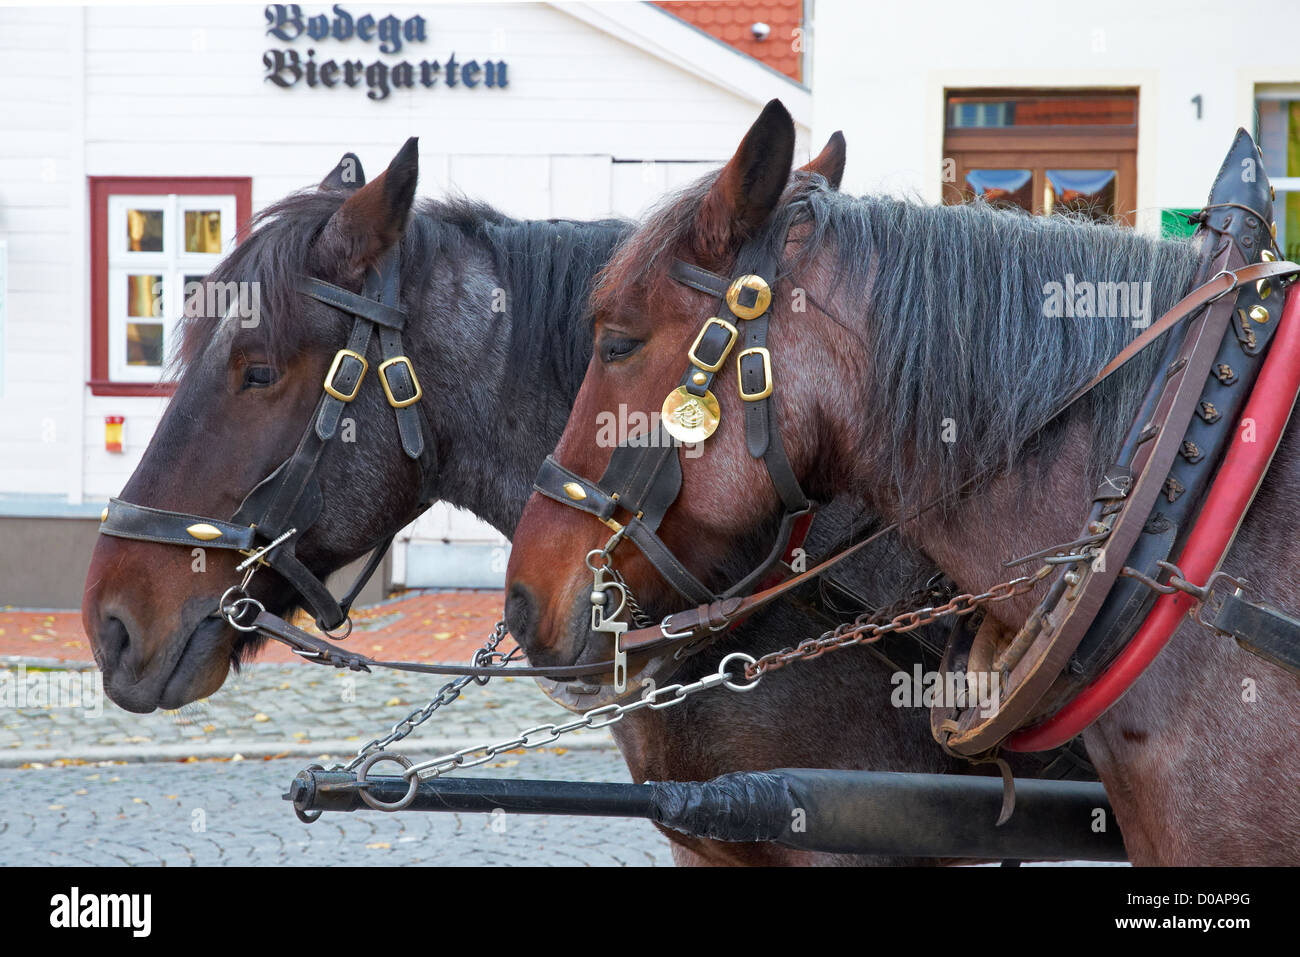 Wernigerode, Sachsen-Anhalt, Germany. Horses harnessed to bus providing tours of the town. Pferde-Bus fur stadt - Stock Image